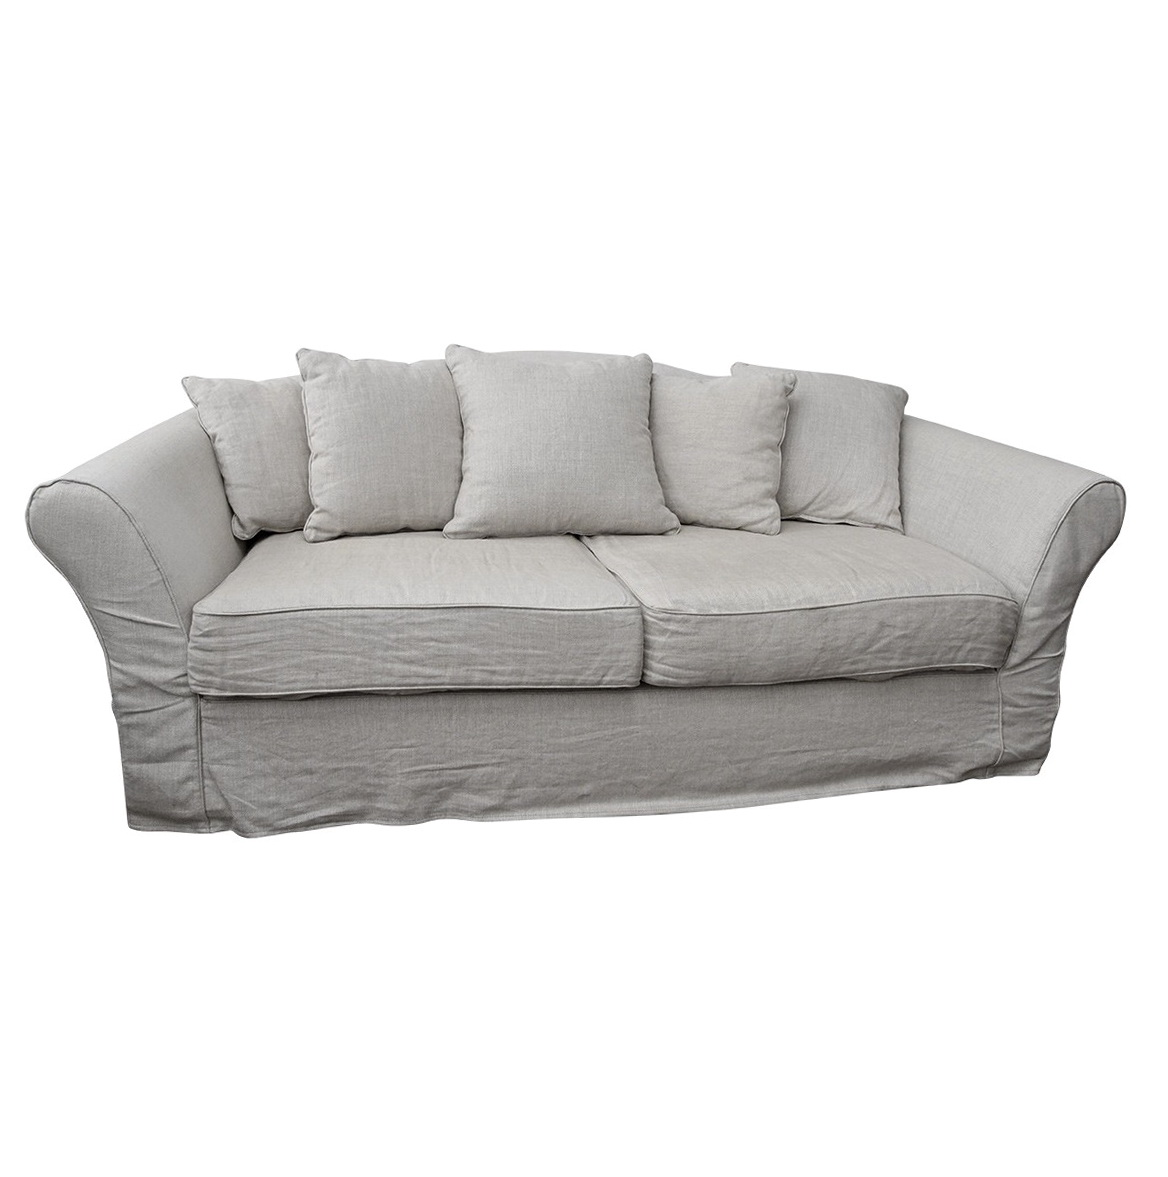 Restoration Hardware Sofa Slipcovers